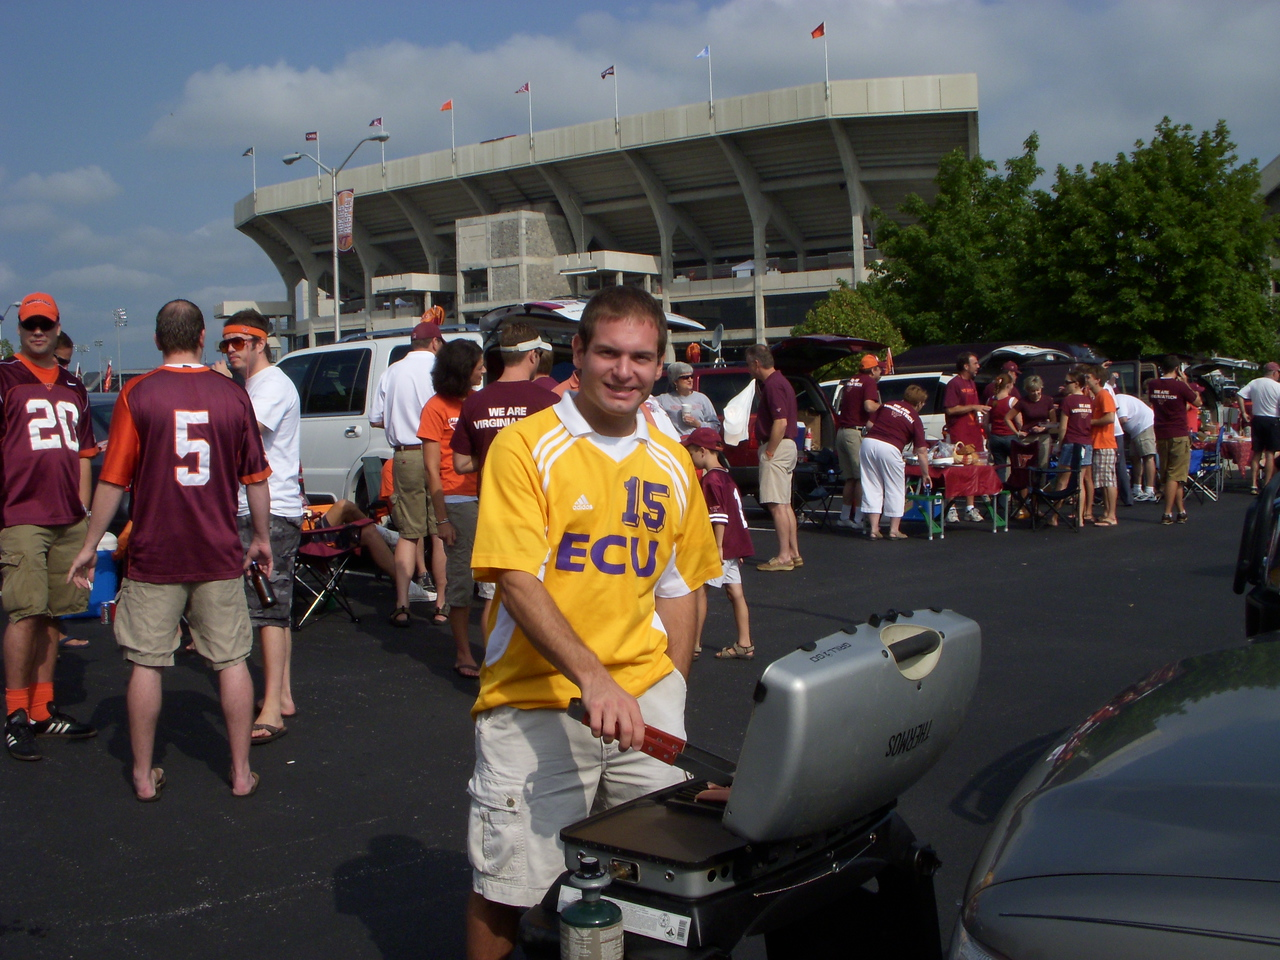 9/1/2007 - ECU @ Virginia Tech - Jon Deutsch grilling out by the stadium